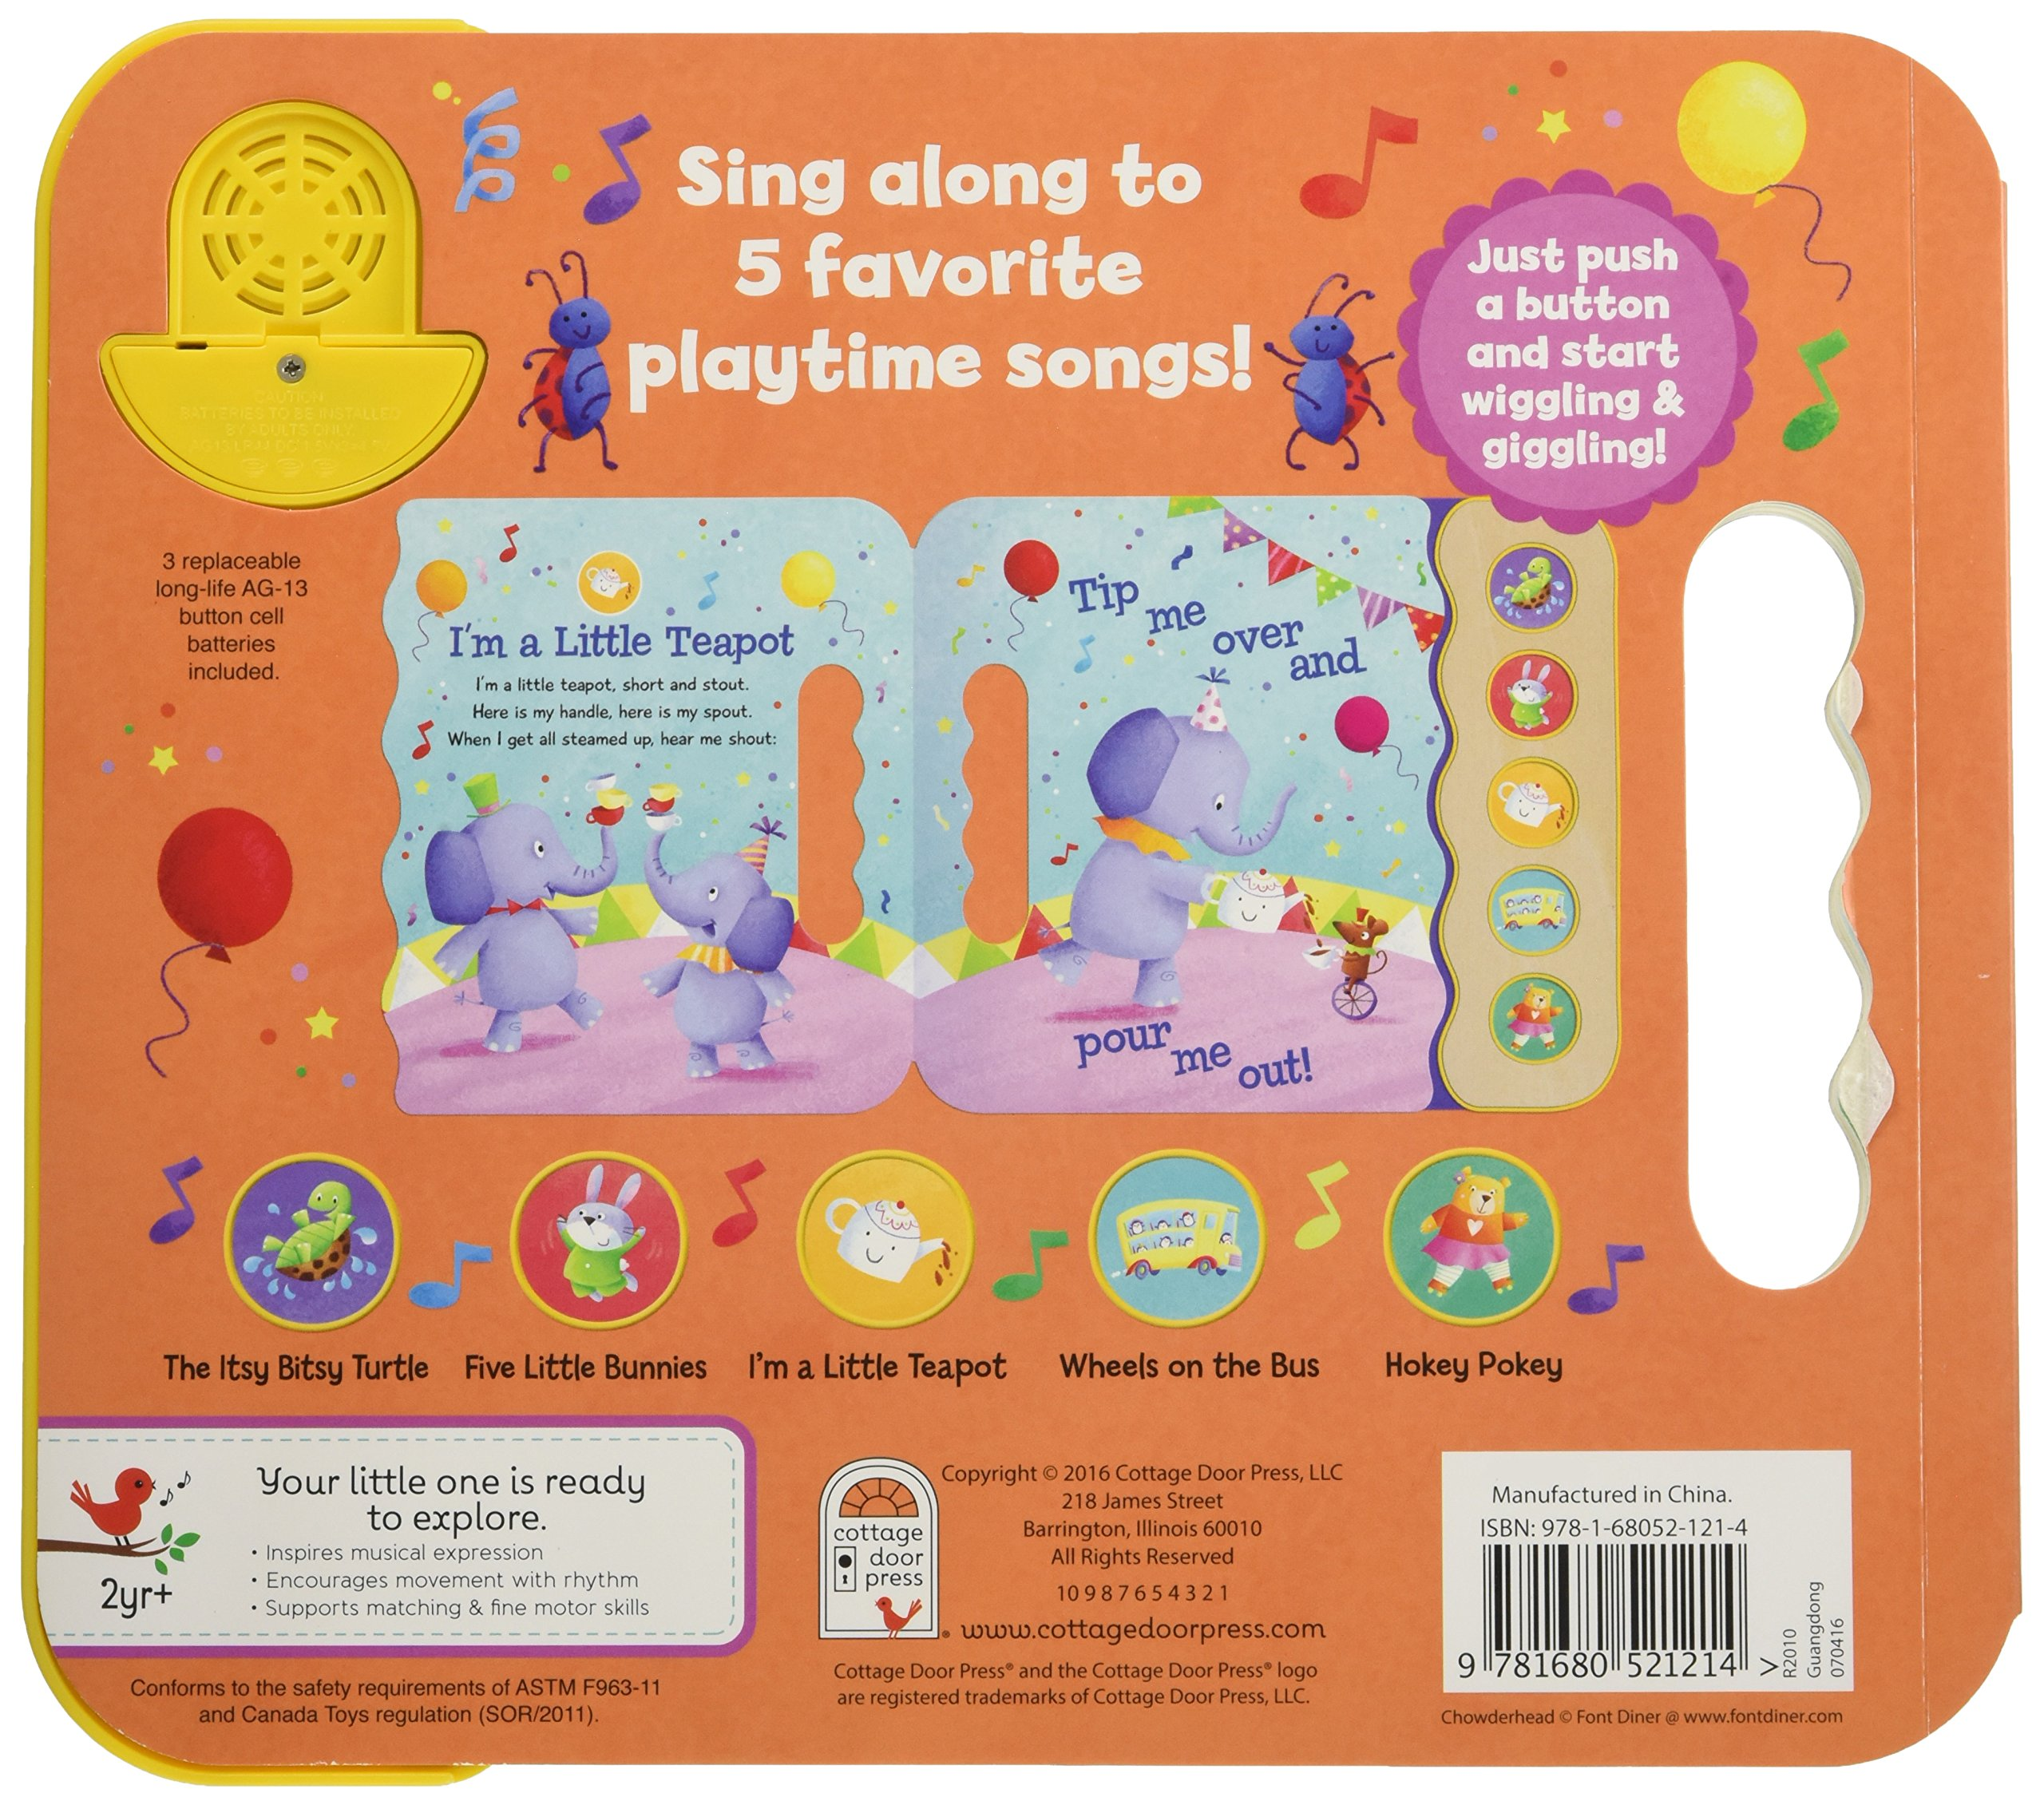 Wiggle, Jiggle, Sing & Giggle: Children's Sound Book (5 Button Sound) by Cottage Door Press (Image #2)